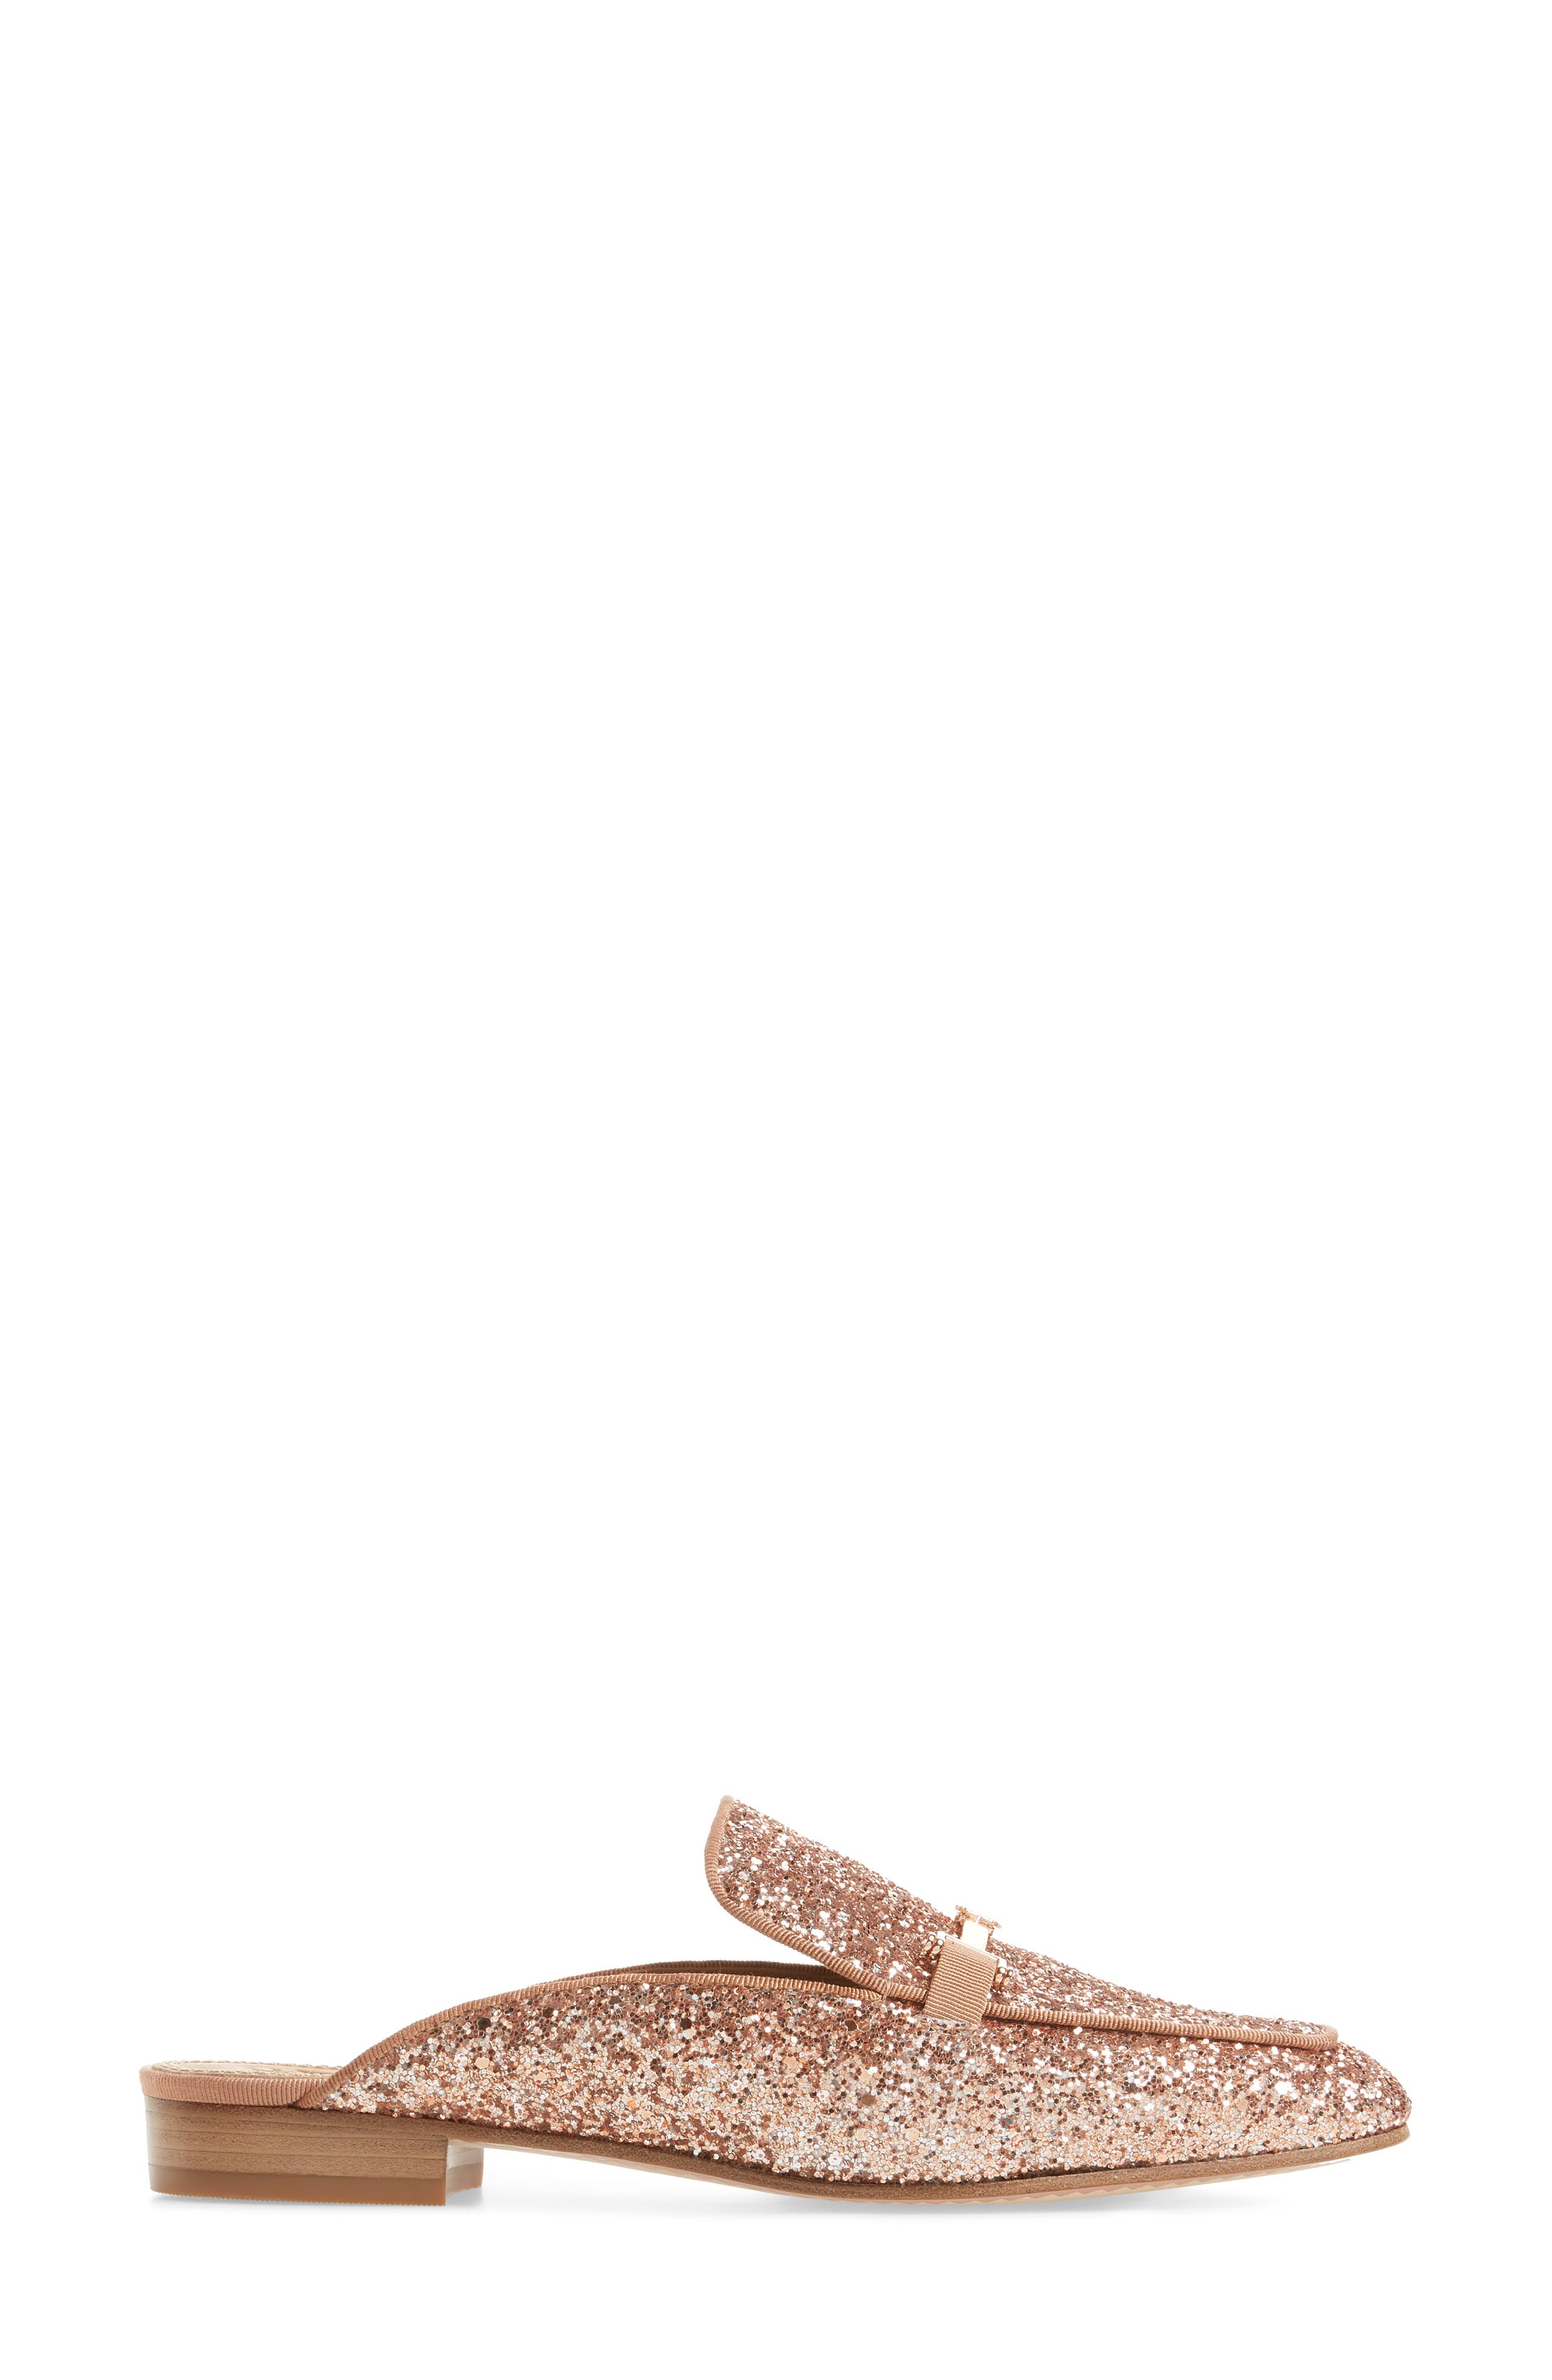 Amelia Loafer Mule,                             Alternate thumbnail 3, color,                             Rose Gold/ Rose Gold